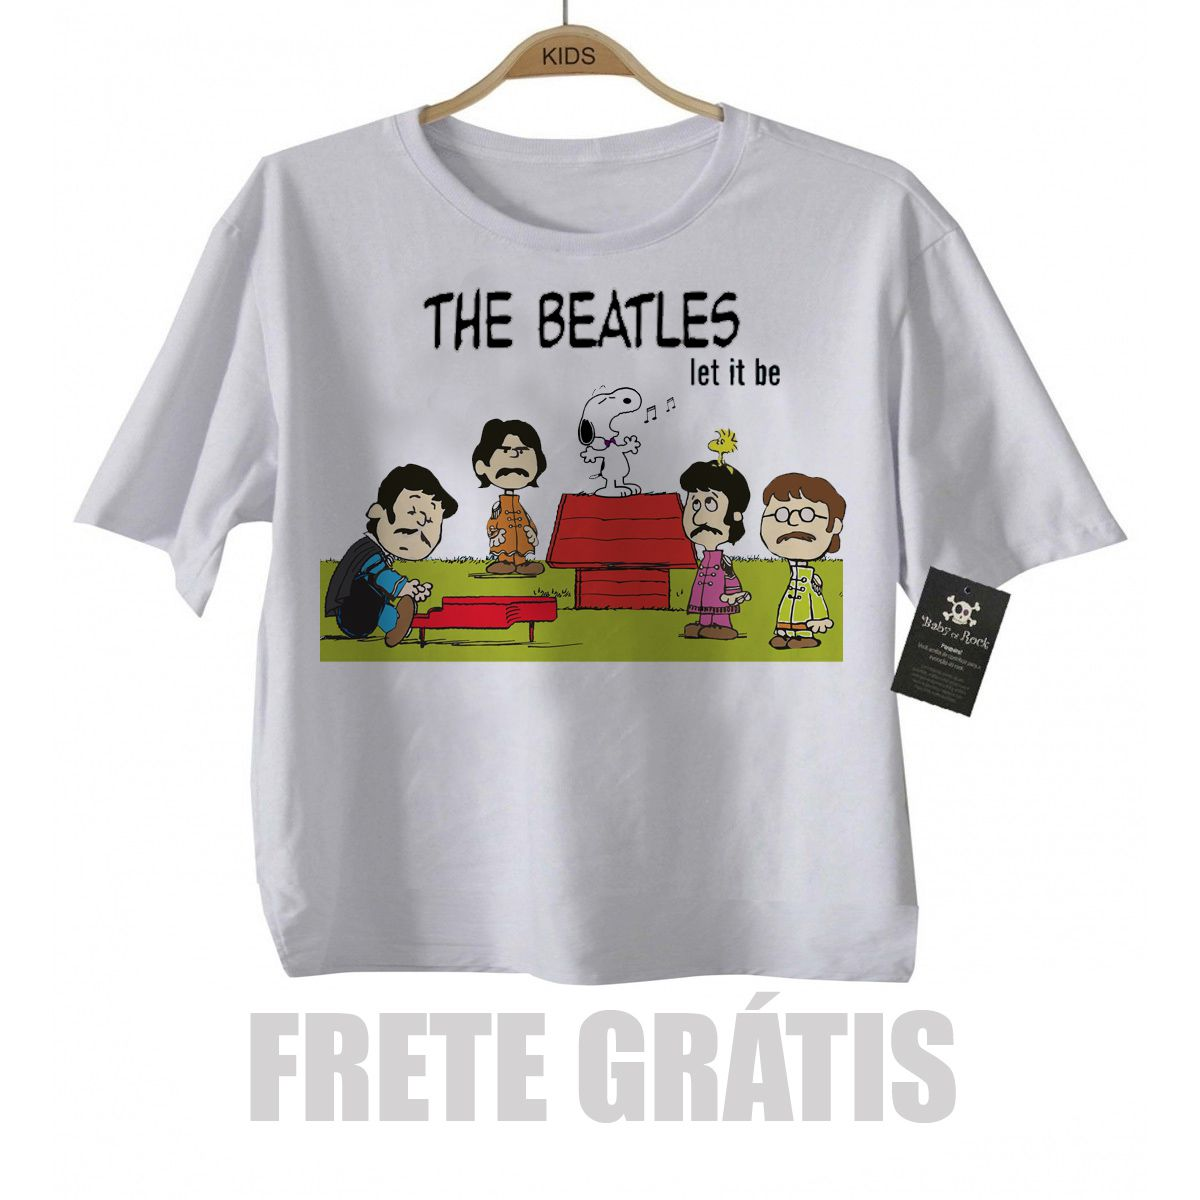 Camiseta Infantil Rock The Beatles - Snoopy  Let it Be  - White  - Baby Monster S/A